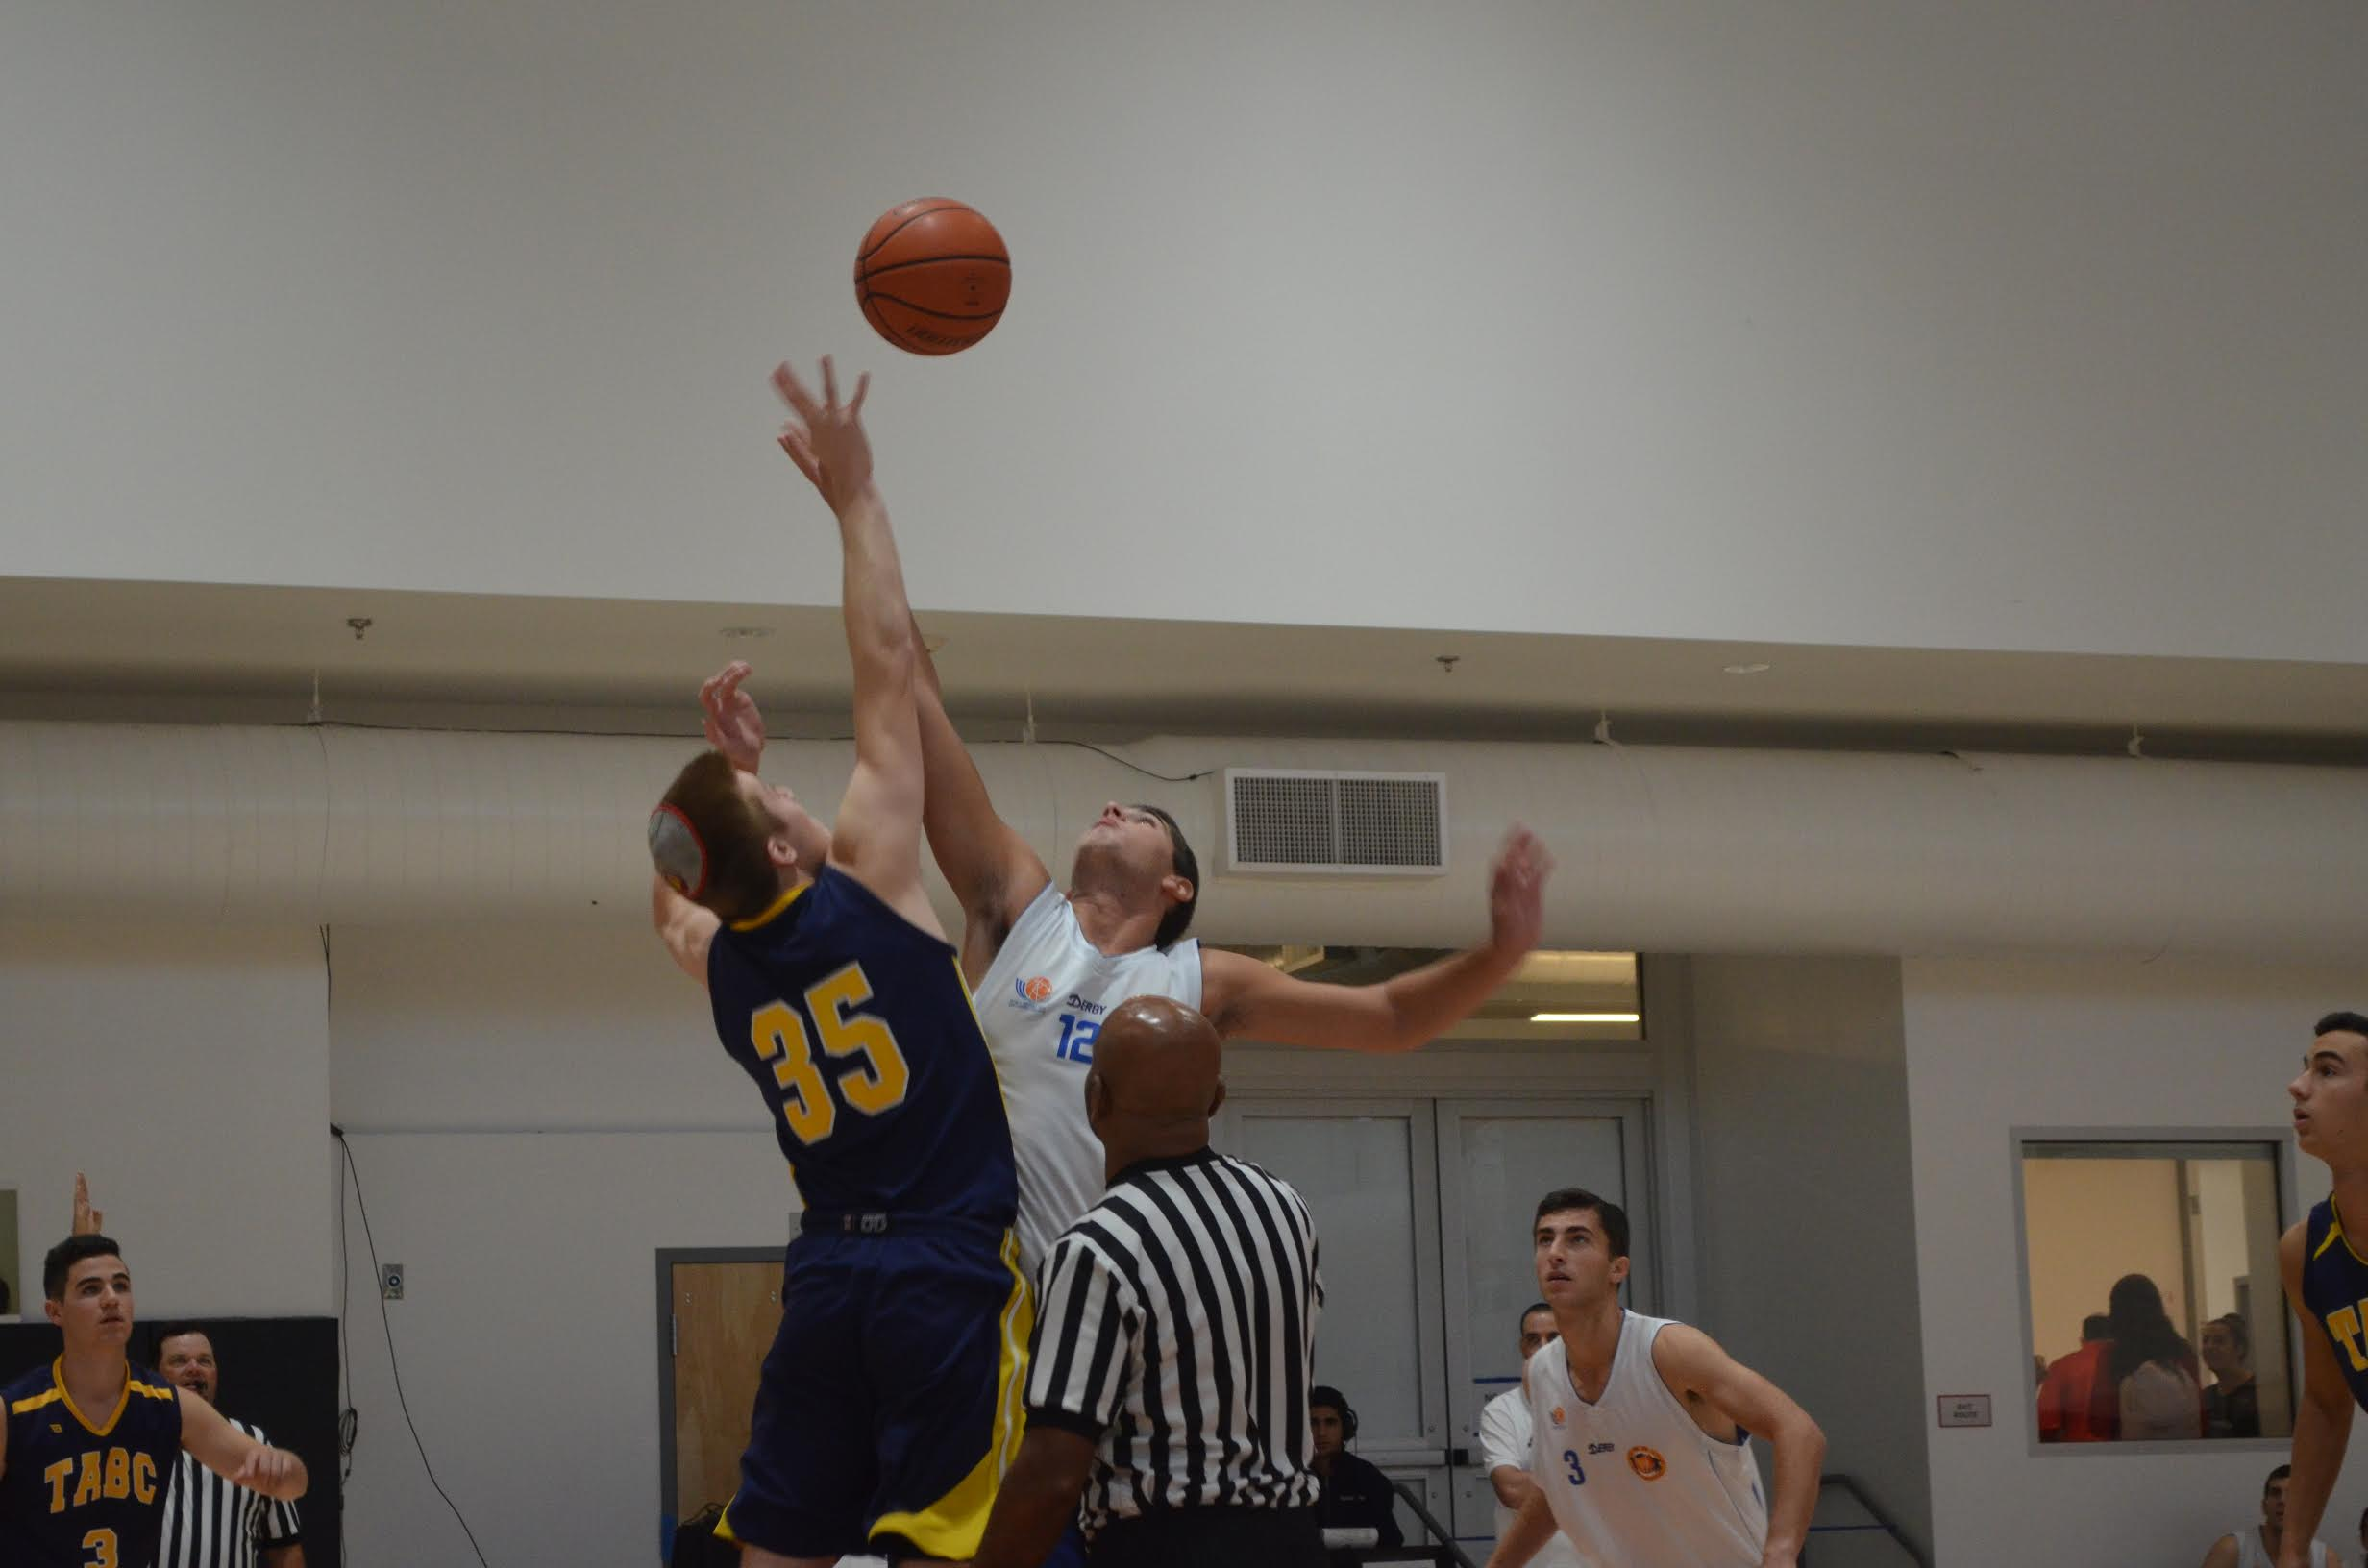 JUMP: Elitzur faced off against TABC on Nov. 10, and lost 48-31. They went 0-4 in the tournament.